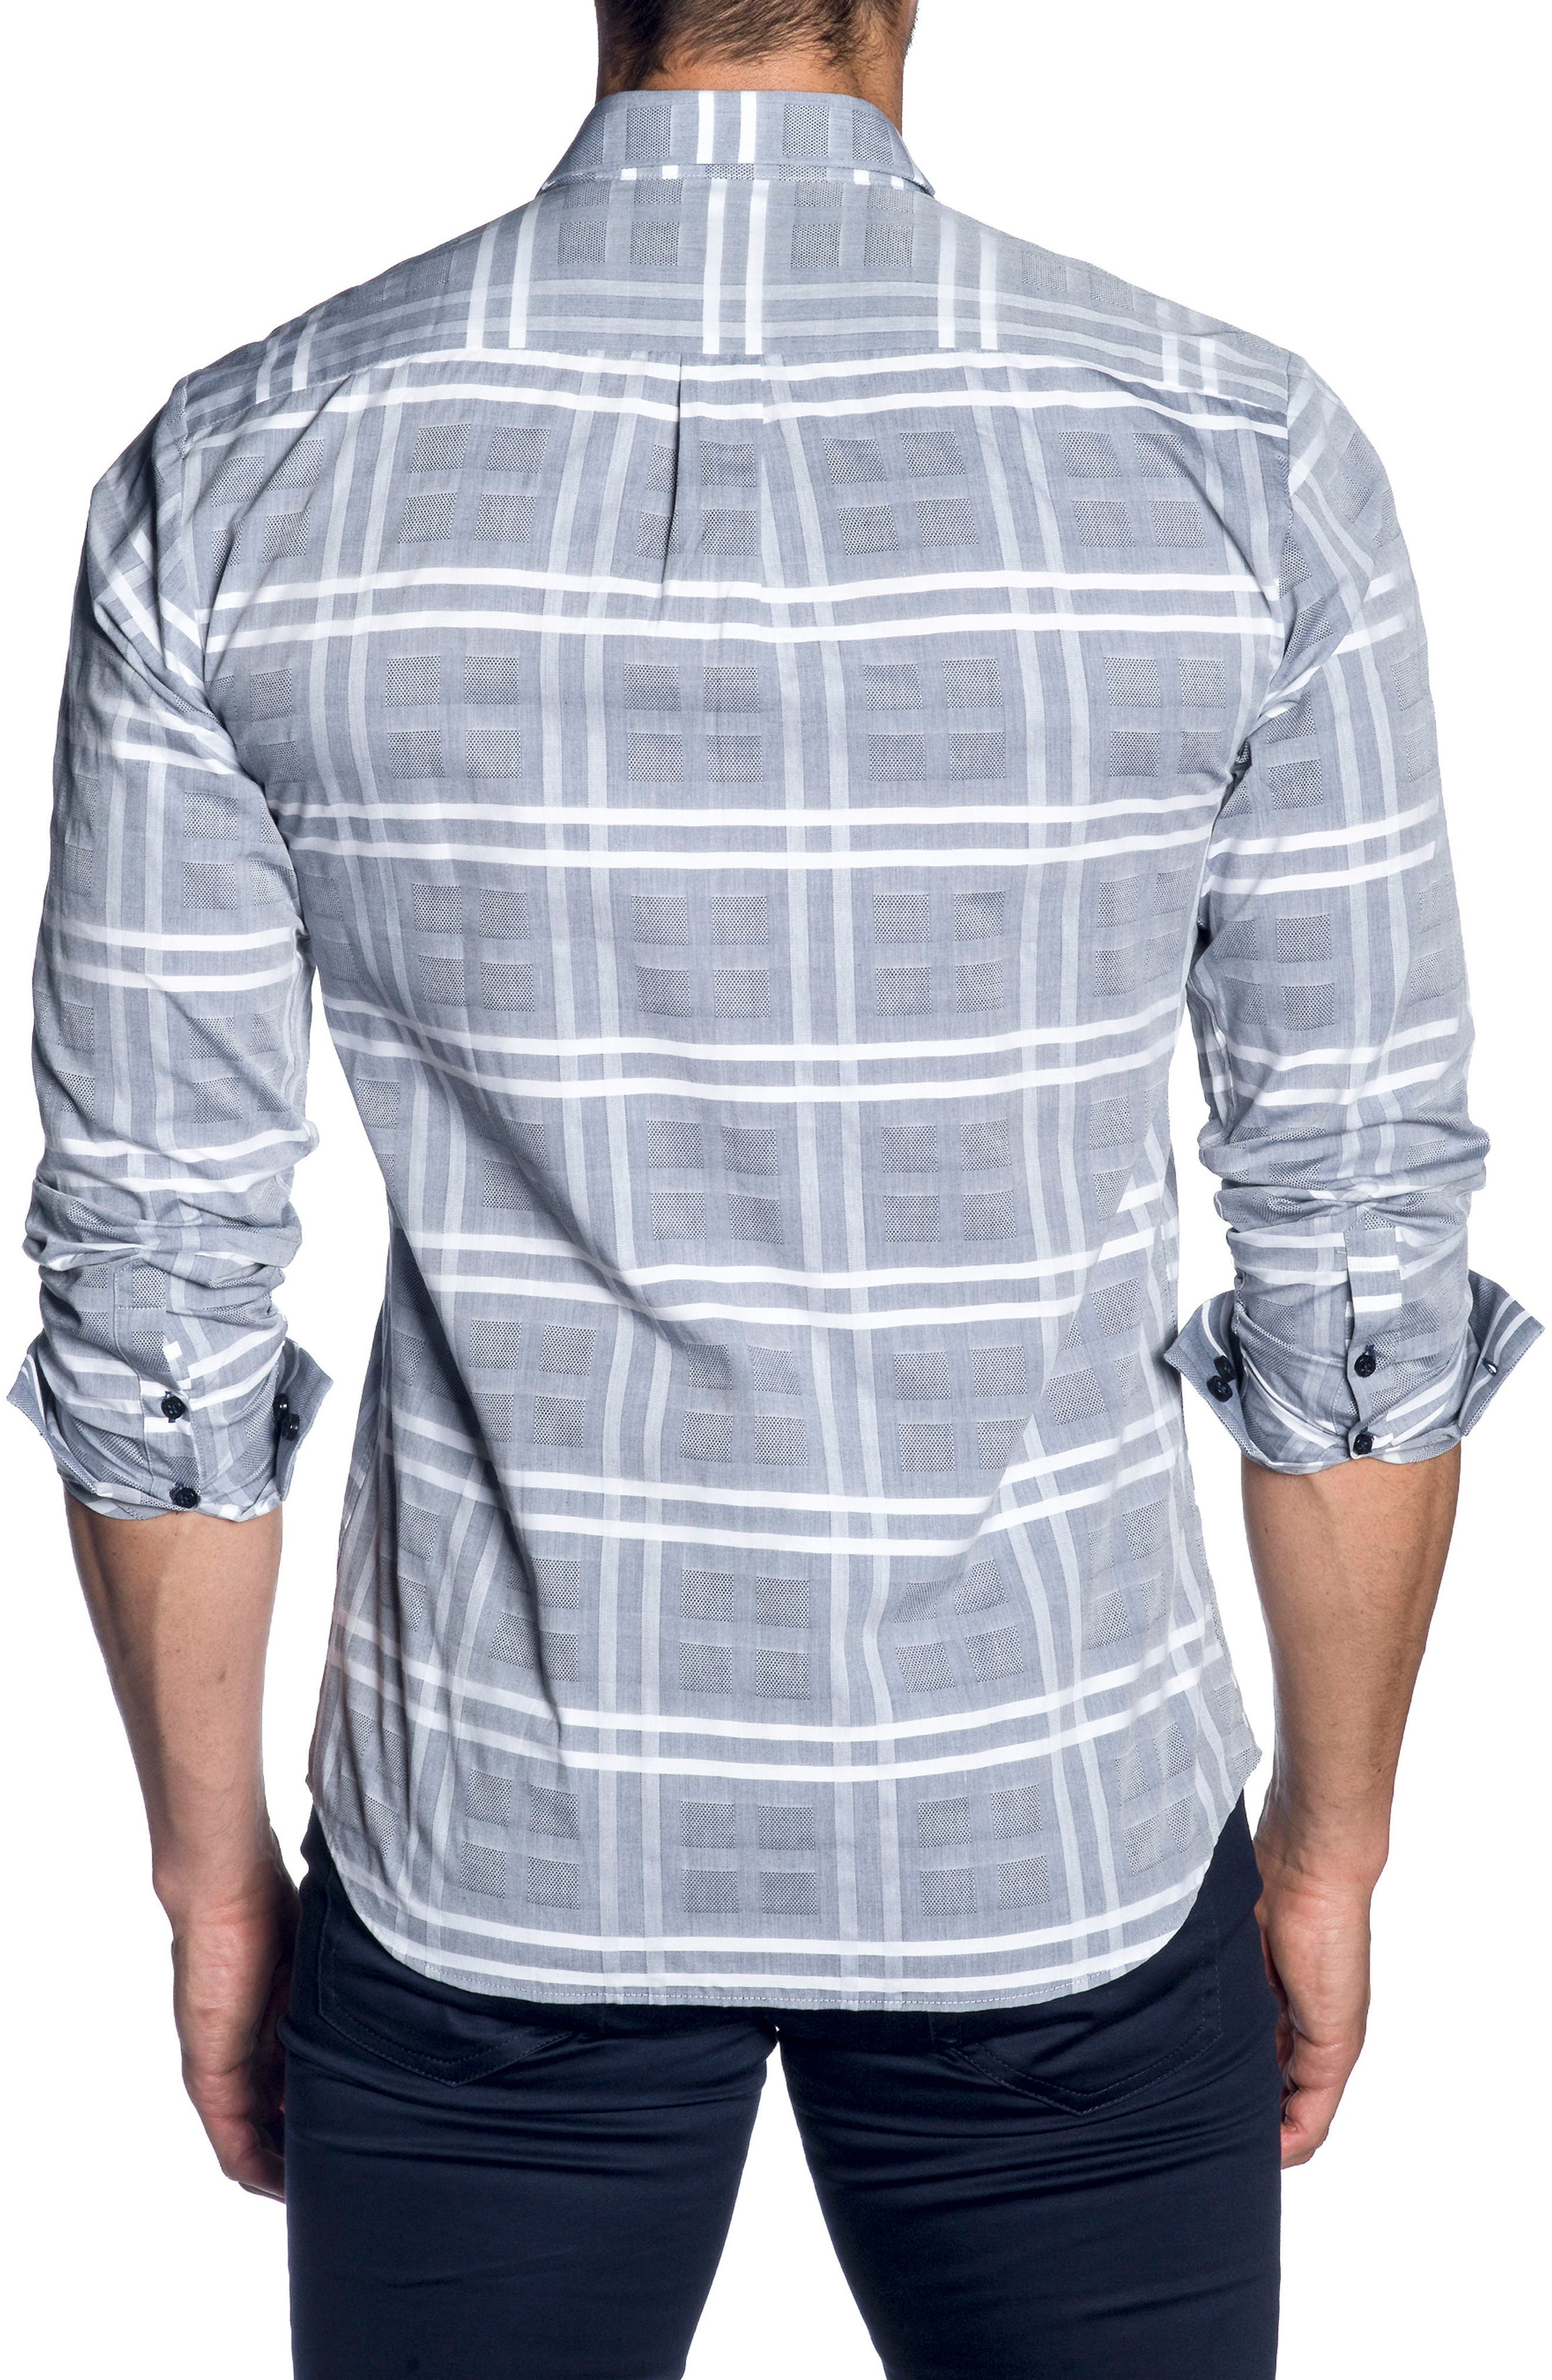 Trim Fit Sport Shirt,                             Alternate thumbnail 2, color,                             Blue Chambery Check